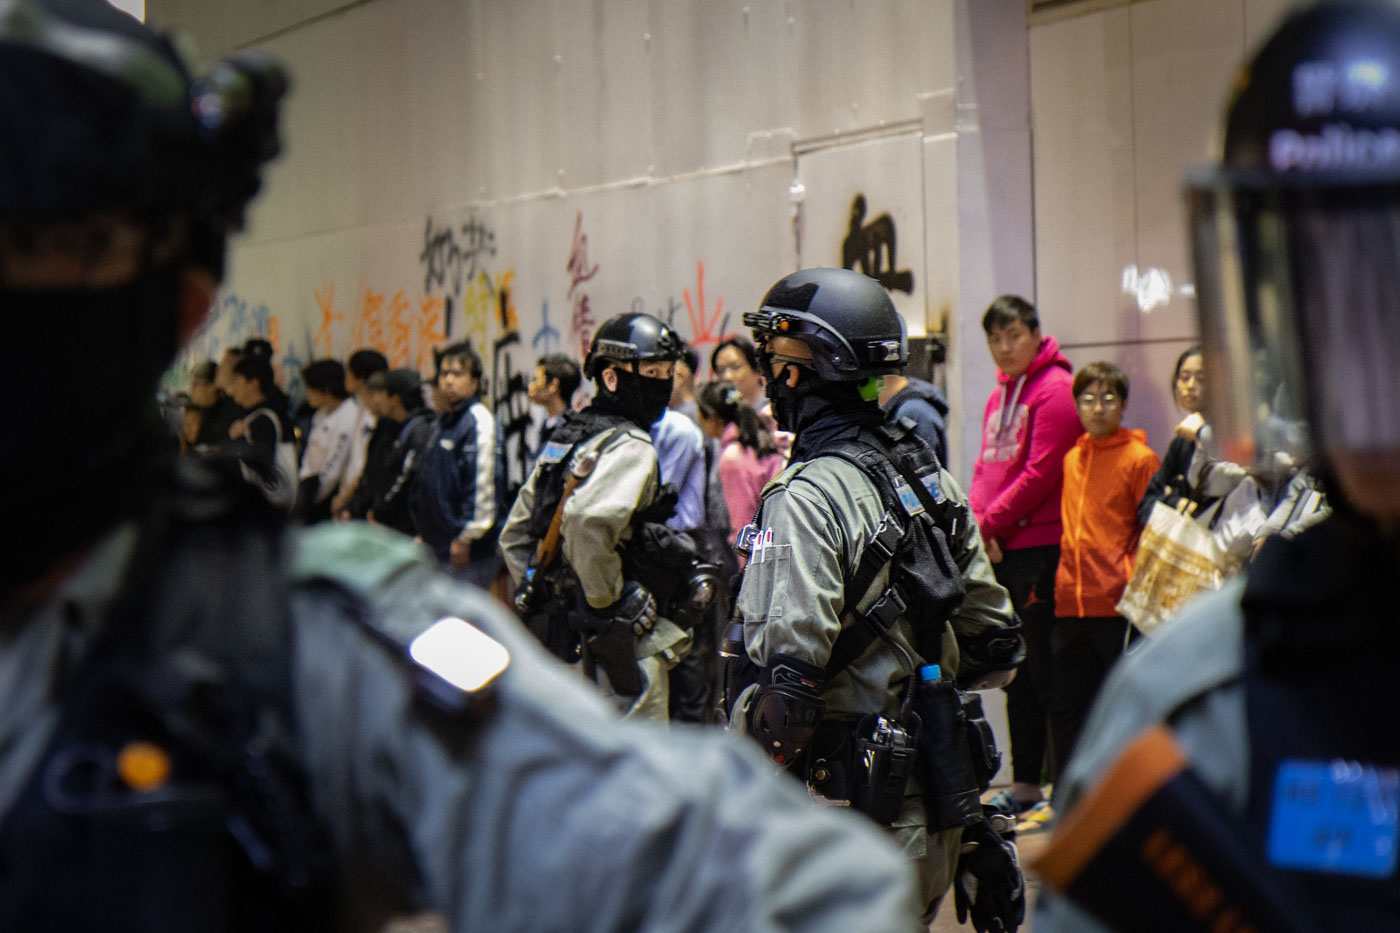 A line of civilians stand agains a wall as riot police guard them.